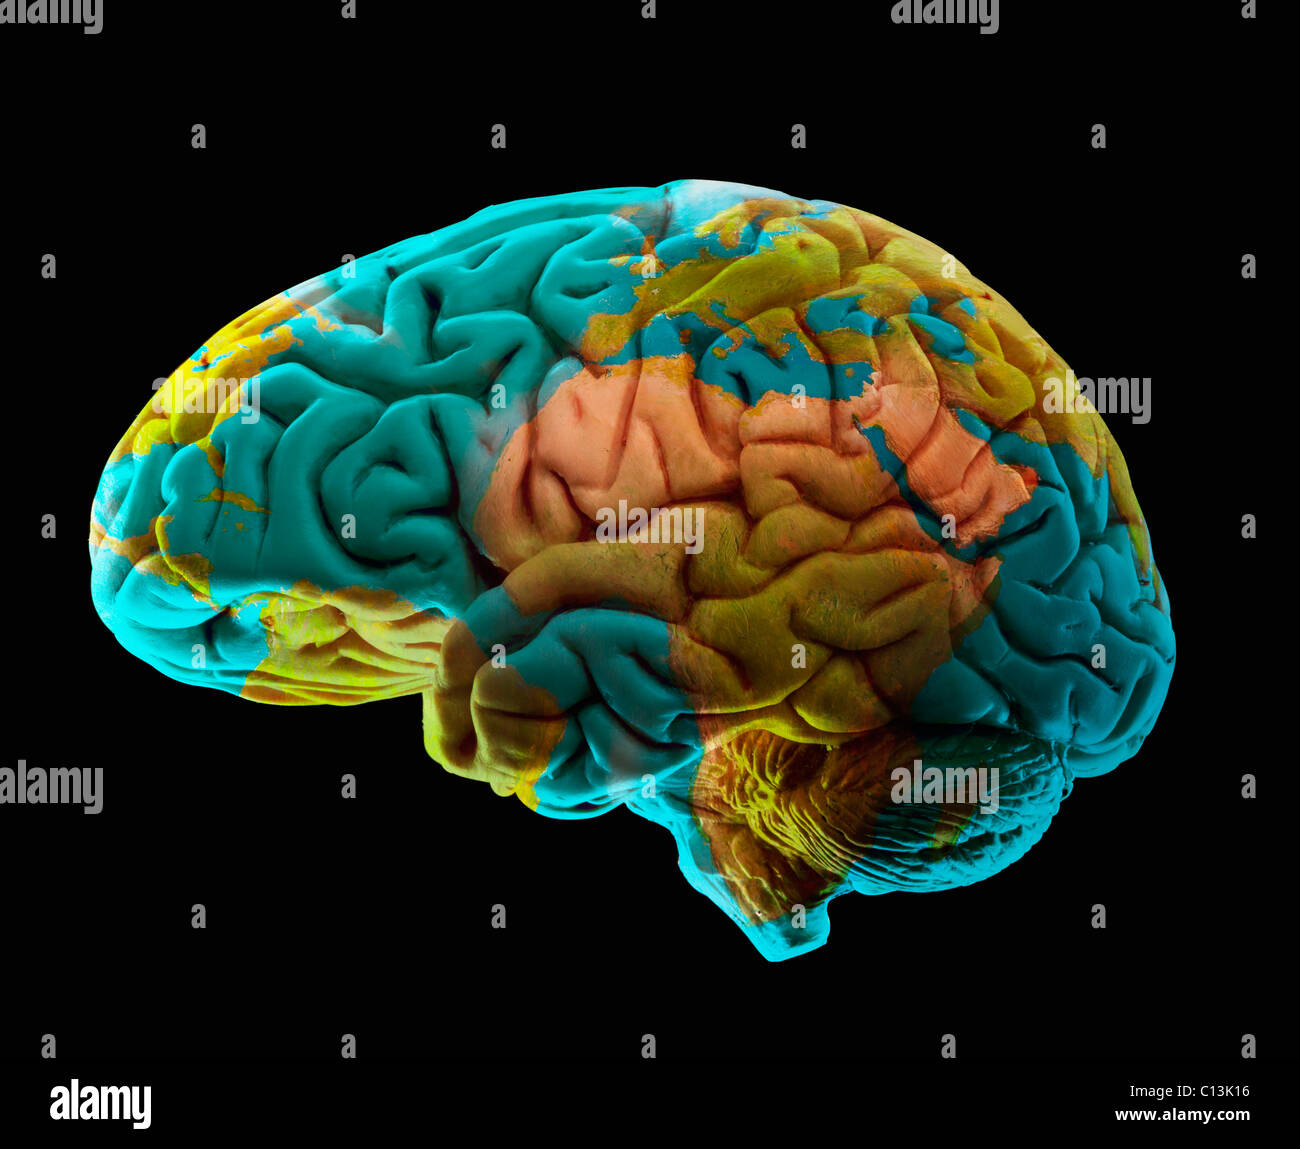 Composition Of Human Brain Model And World Map Stock Photo 35116178